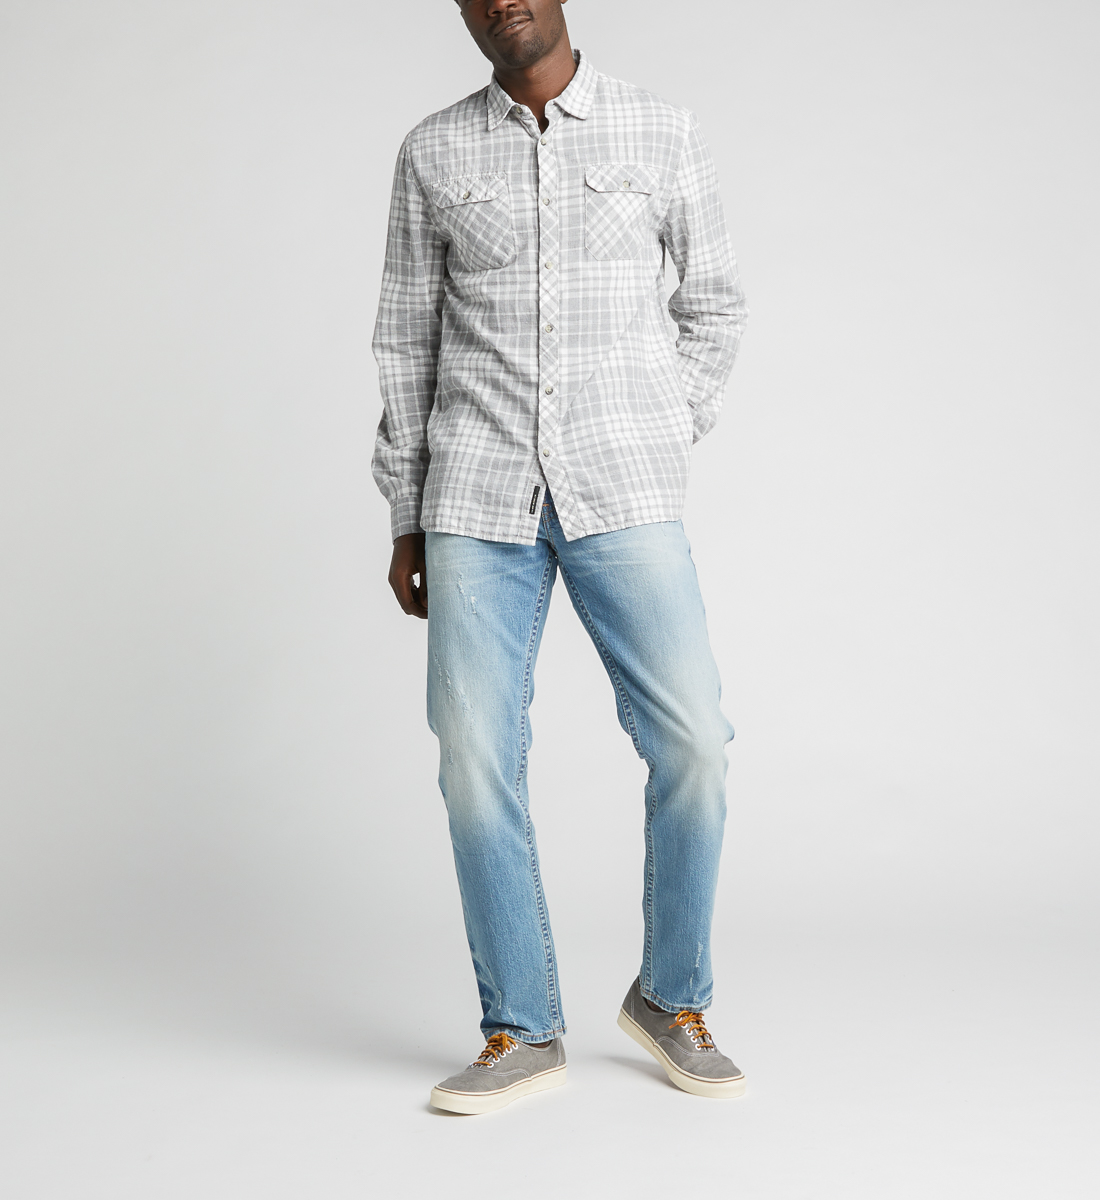 Charly Long-Sleeve Plaid Button-Down Shirt,Grey Back